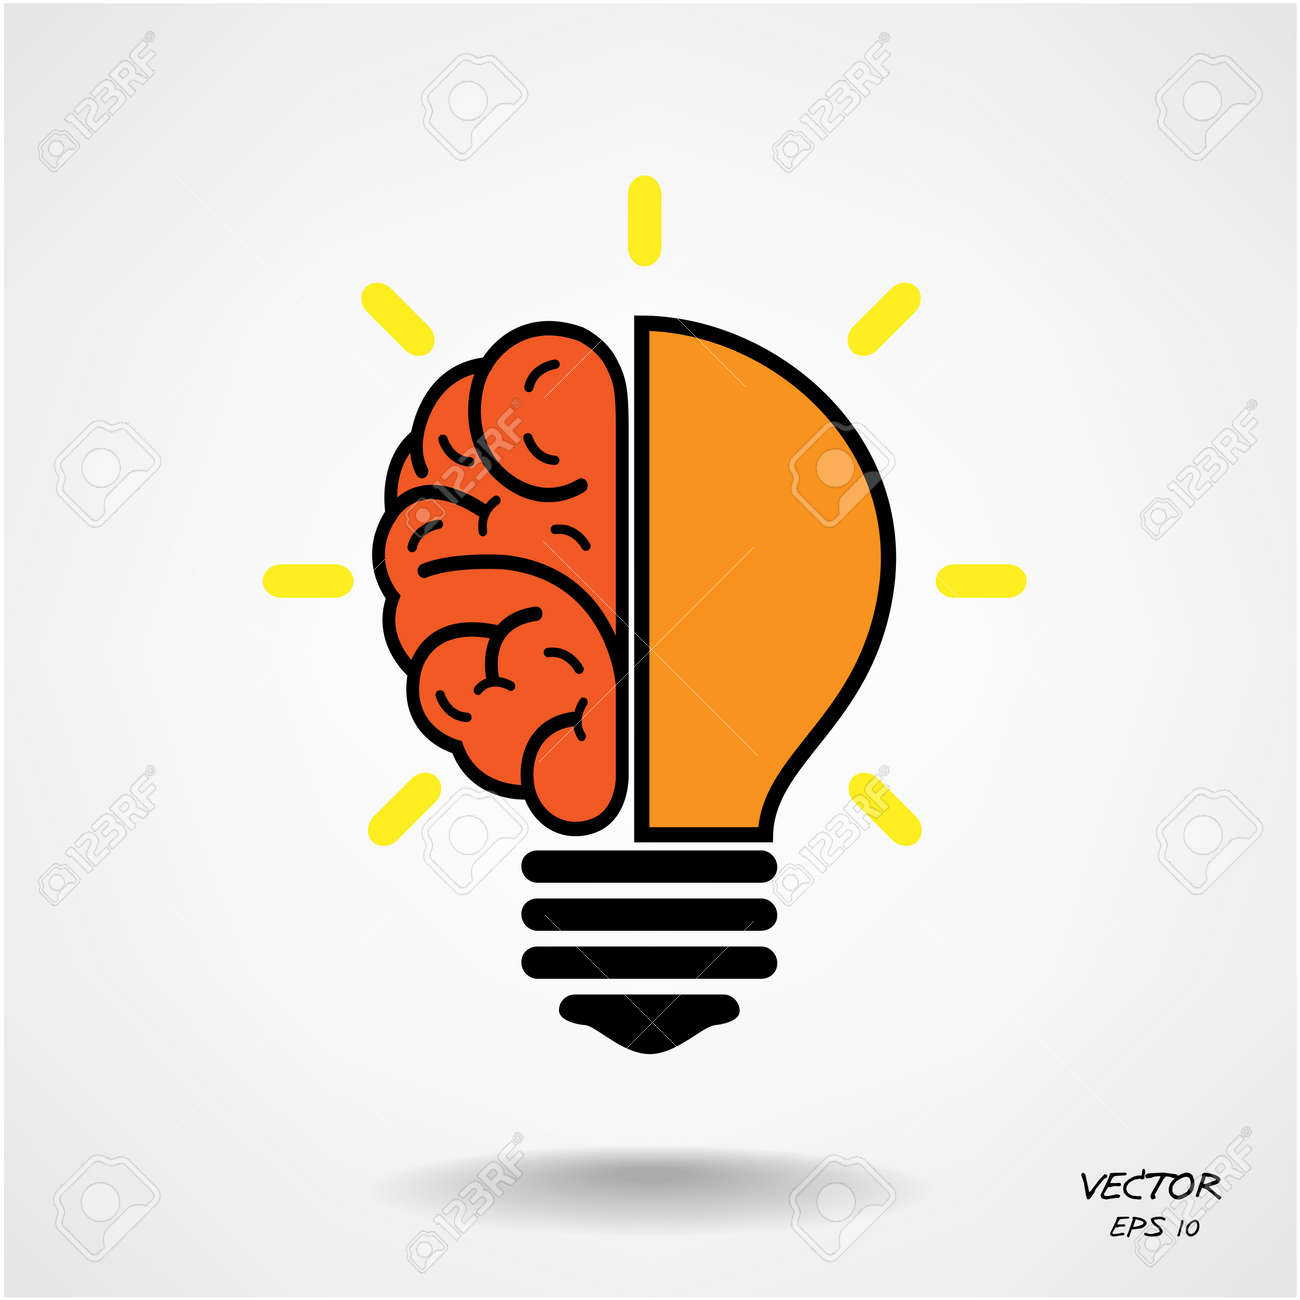 Creative brain Idea concept background design Stock Vector - 25249091